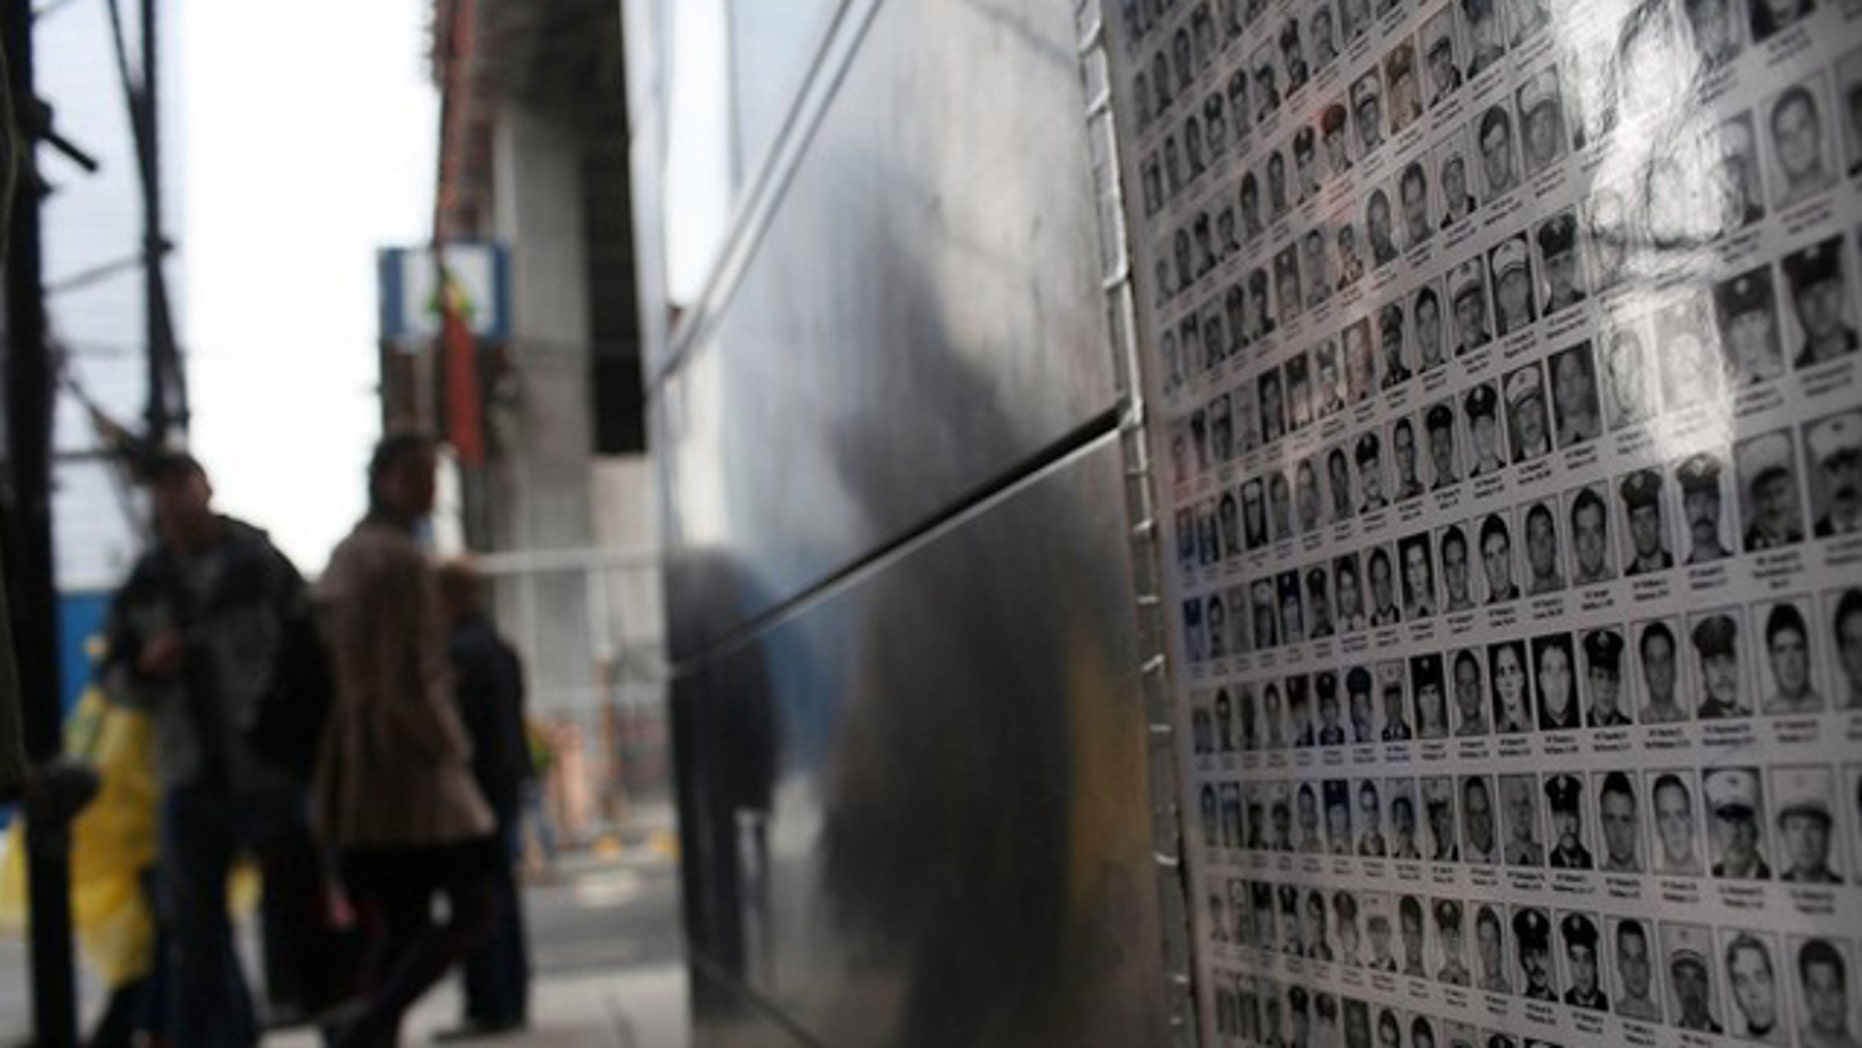 A memorial at Ground Zero dedicated to New York fire fighters killed on Sept. 11, 2001.